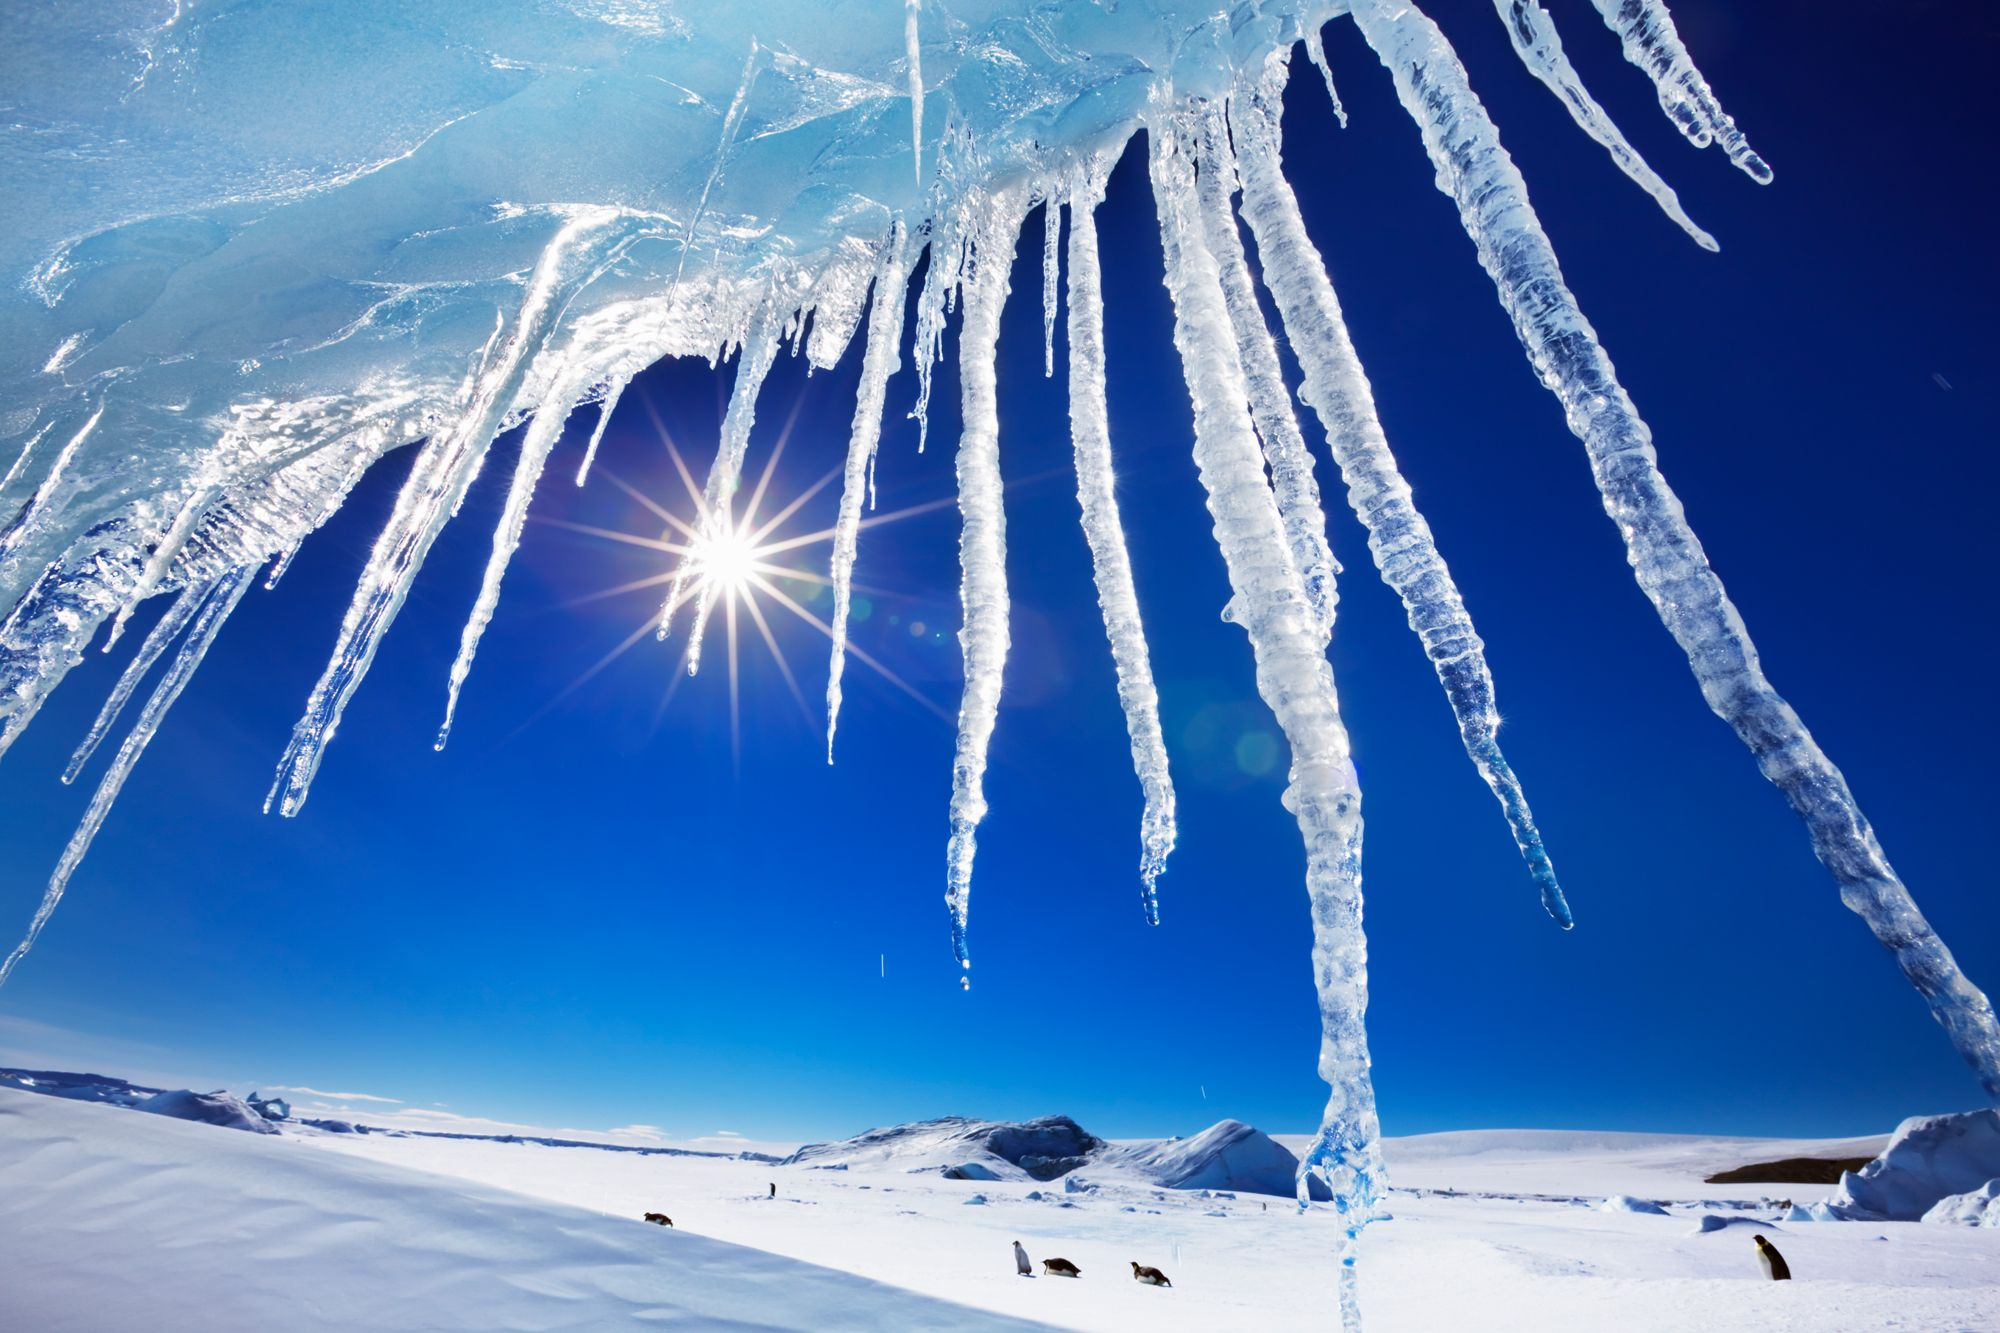 A 'Frozen' world: Amazing icy landscapes - Icicles on Snow Hill ...